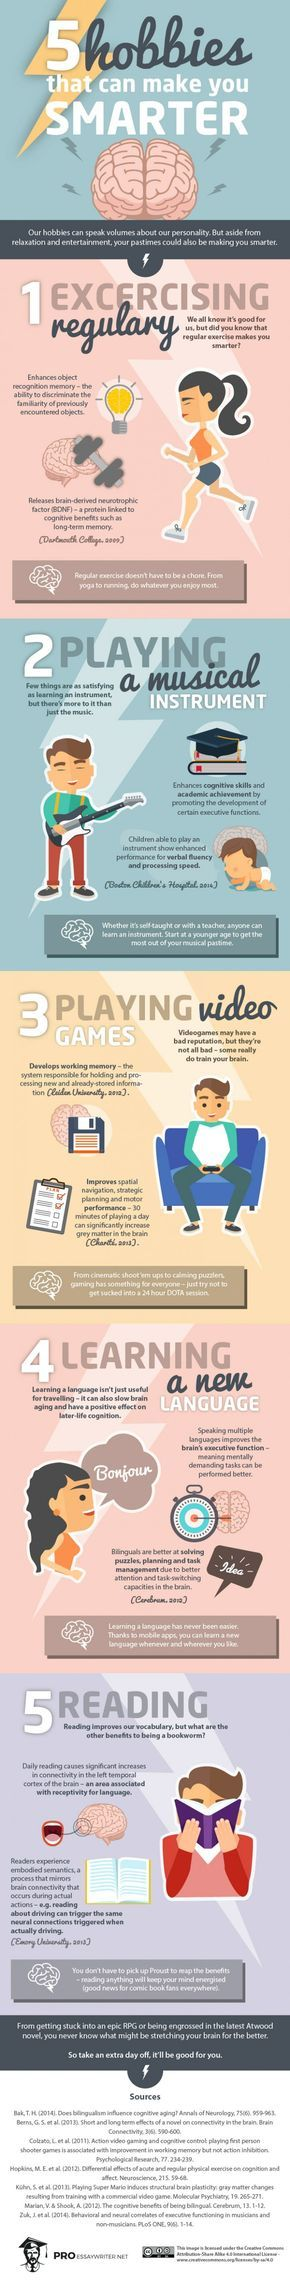 5 Hobbies That Will Make You Smarter [Infographic]   Daily Infographic